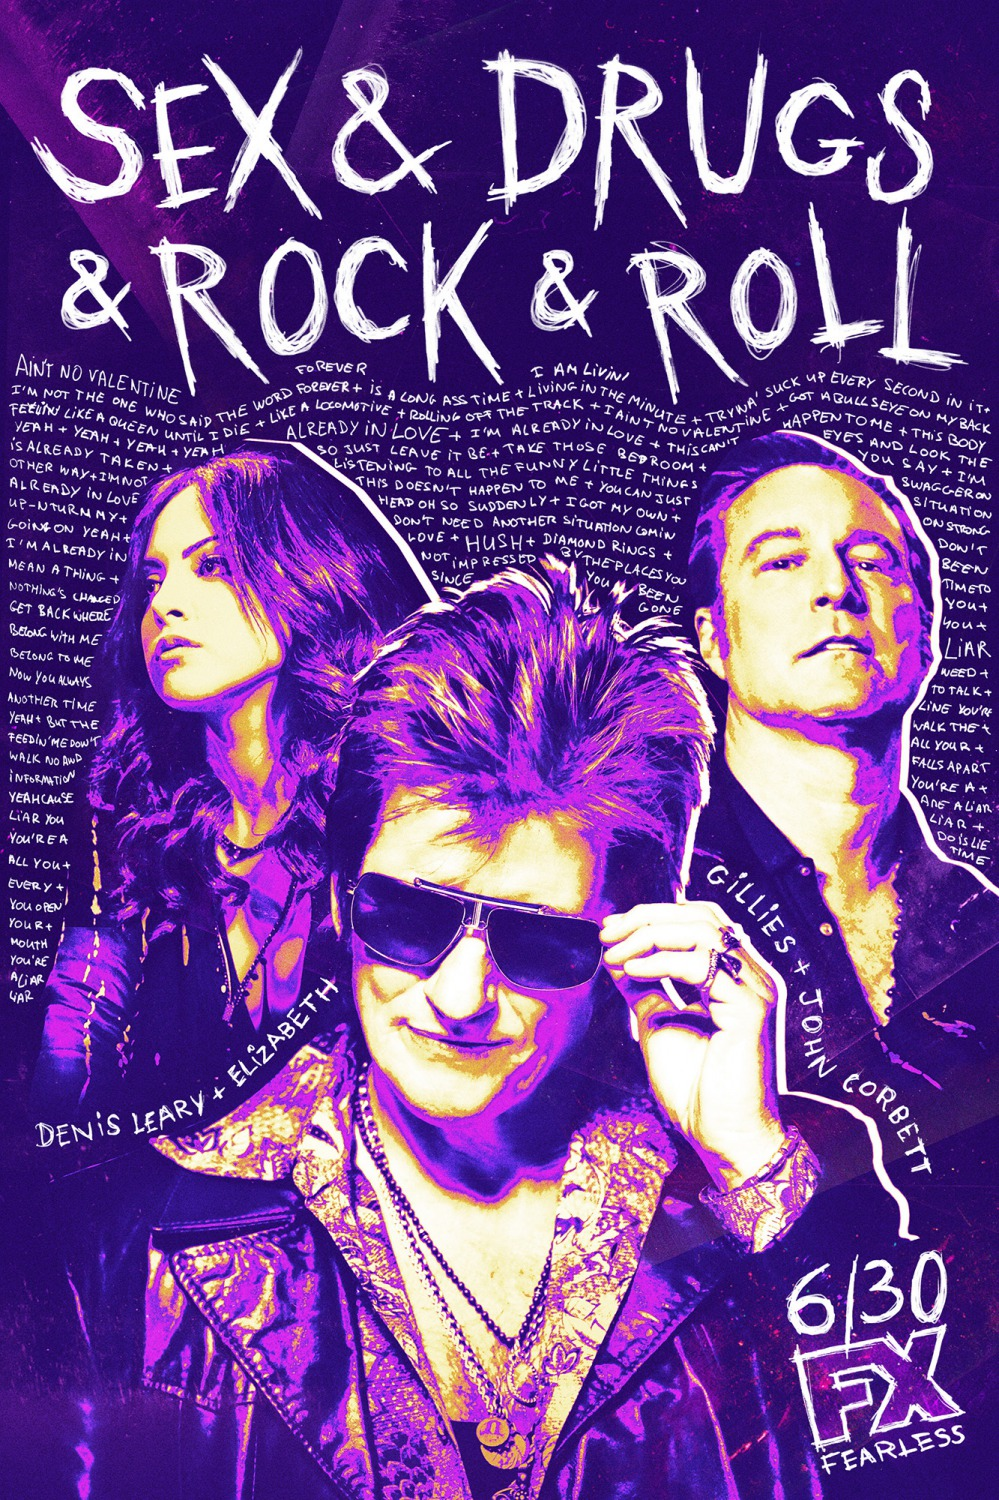 Sex and drugs and rock and roll song